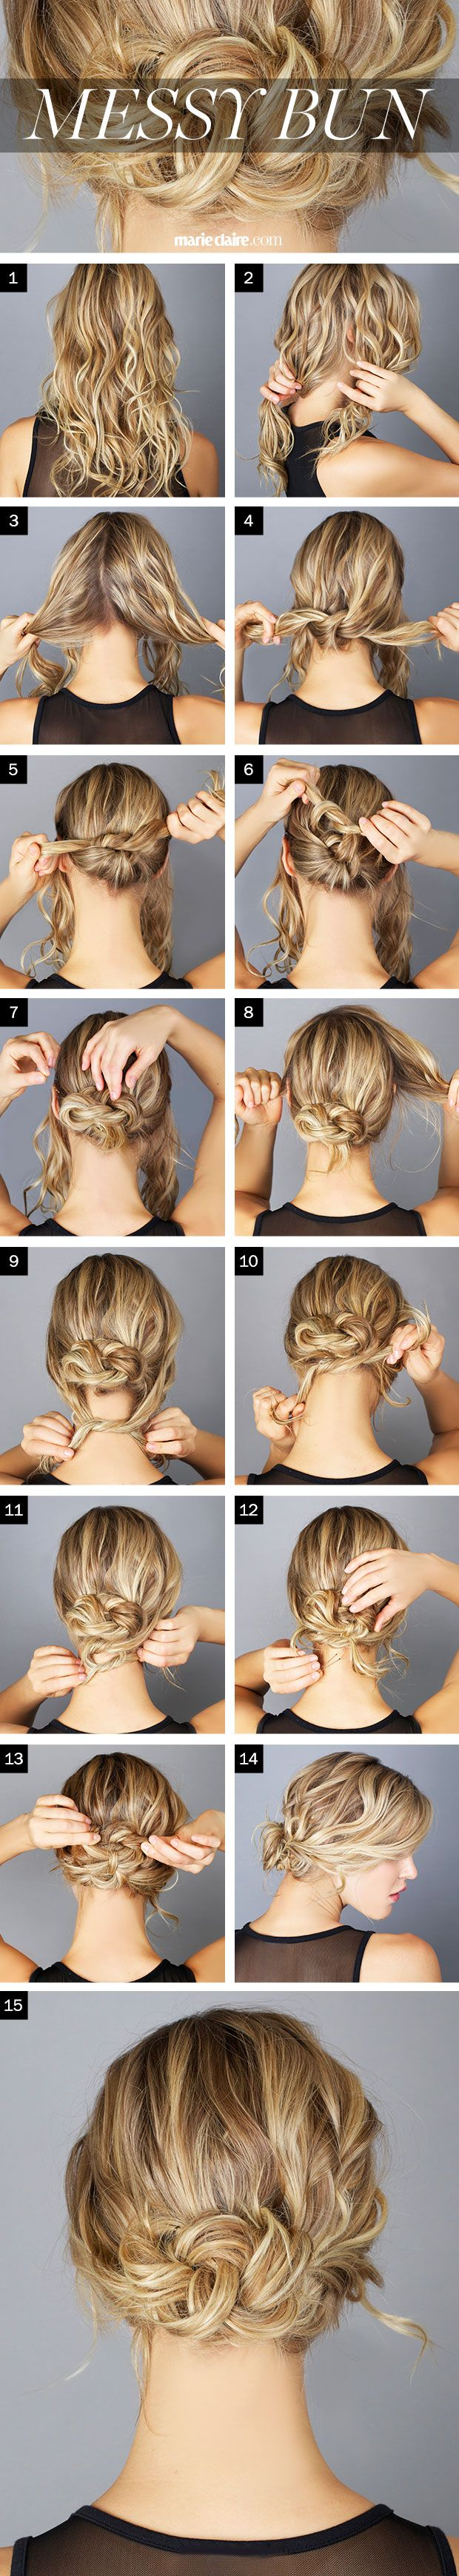 Hair How-To: The Messy Knot Bun (click for step by step instructions)